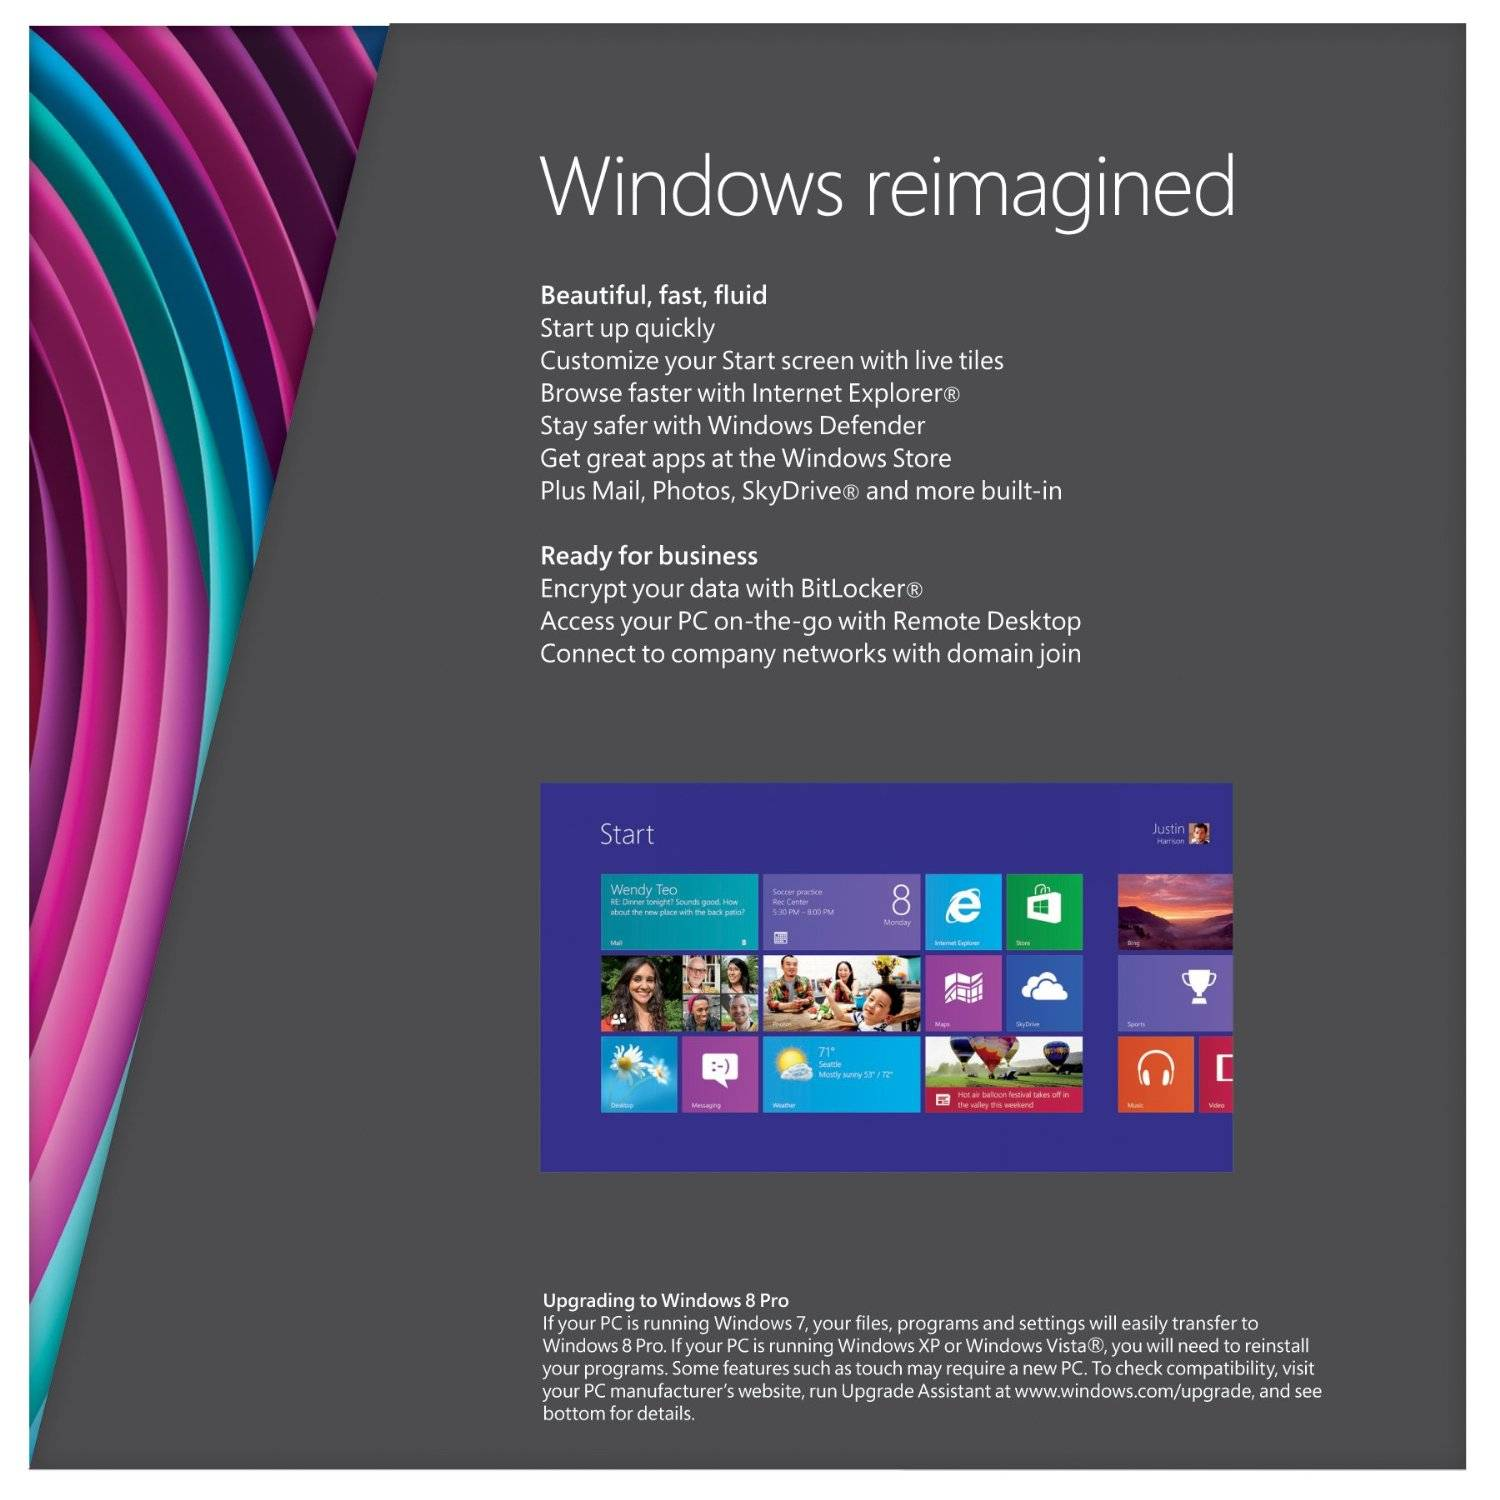 upgrade windows 8 pro to windows 8.1 pro manually